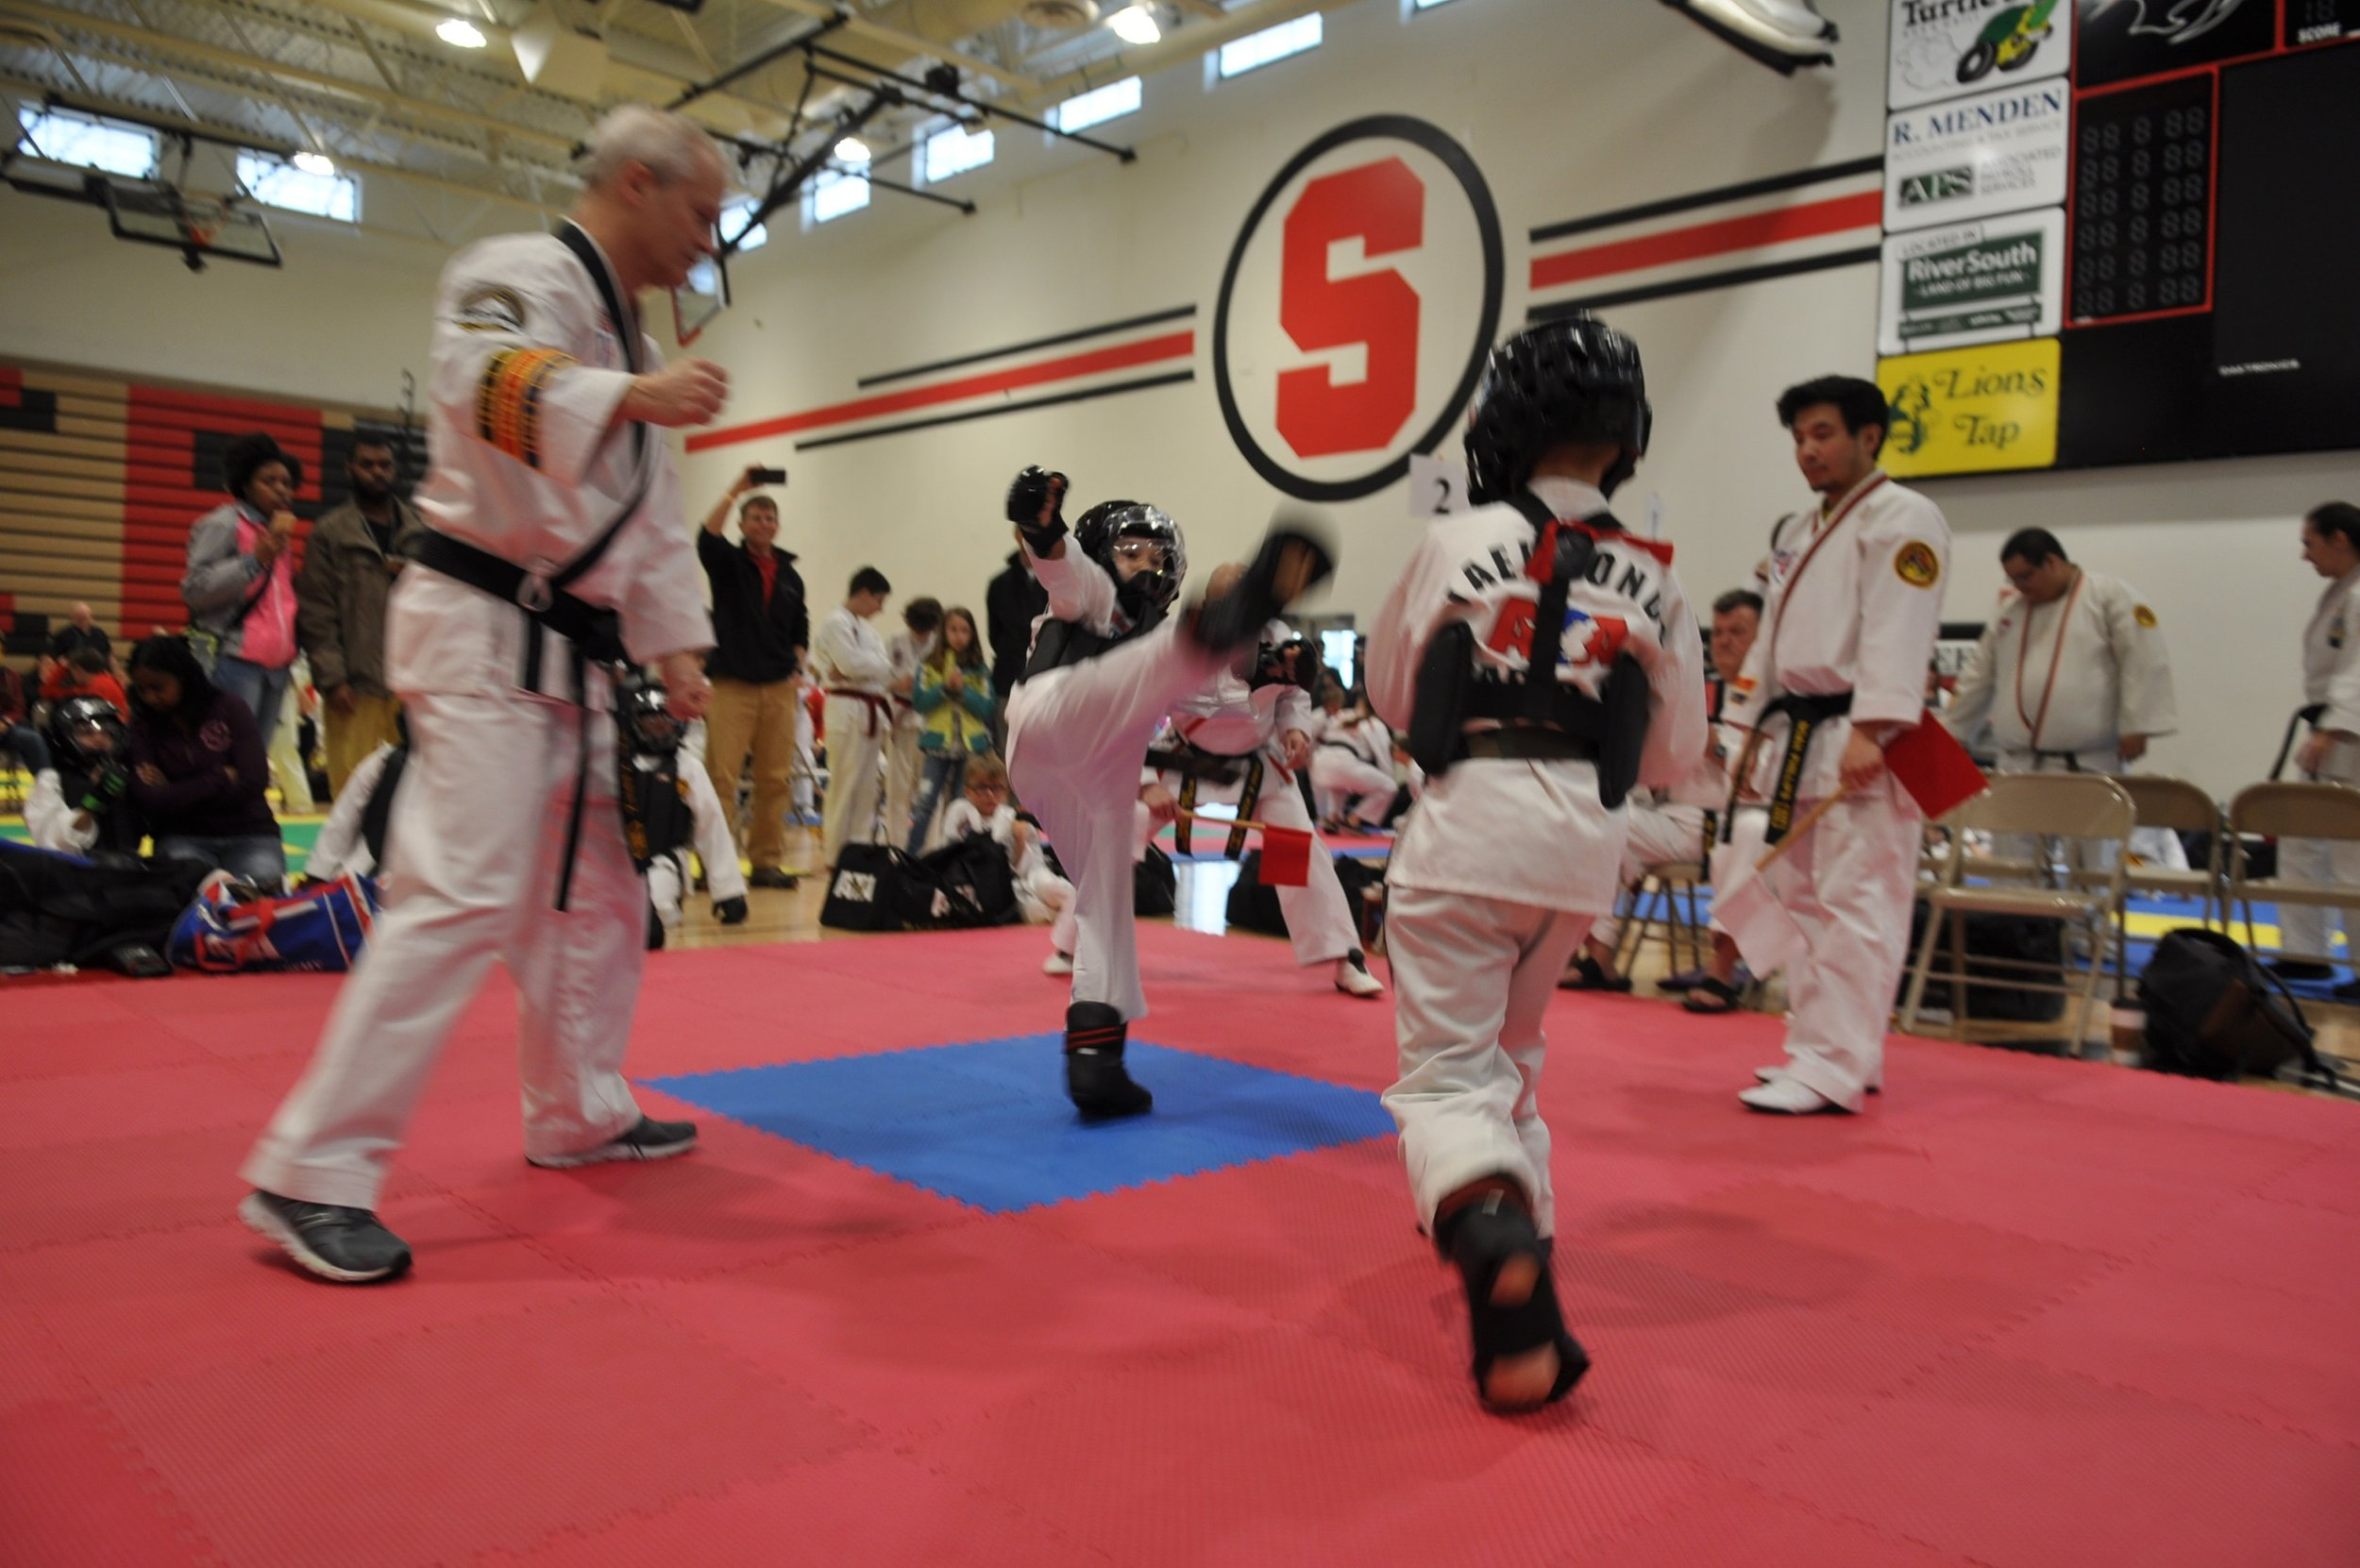 2018-twin-cities-tourney-lakes-martial-arts-004.JPG